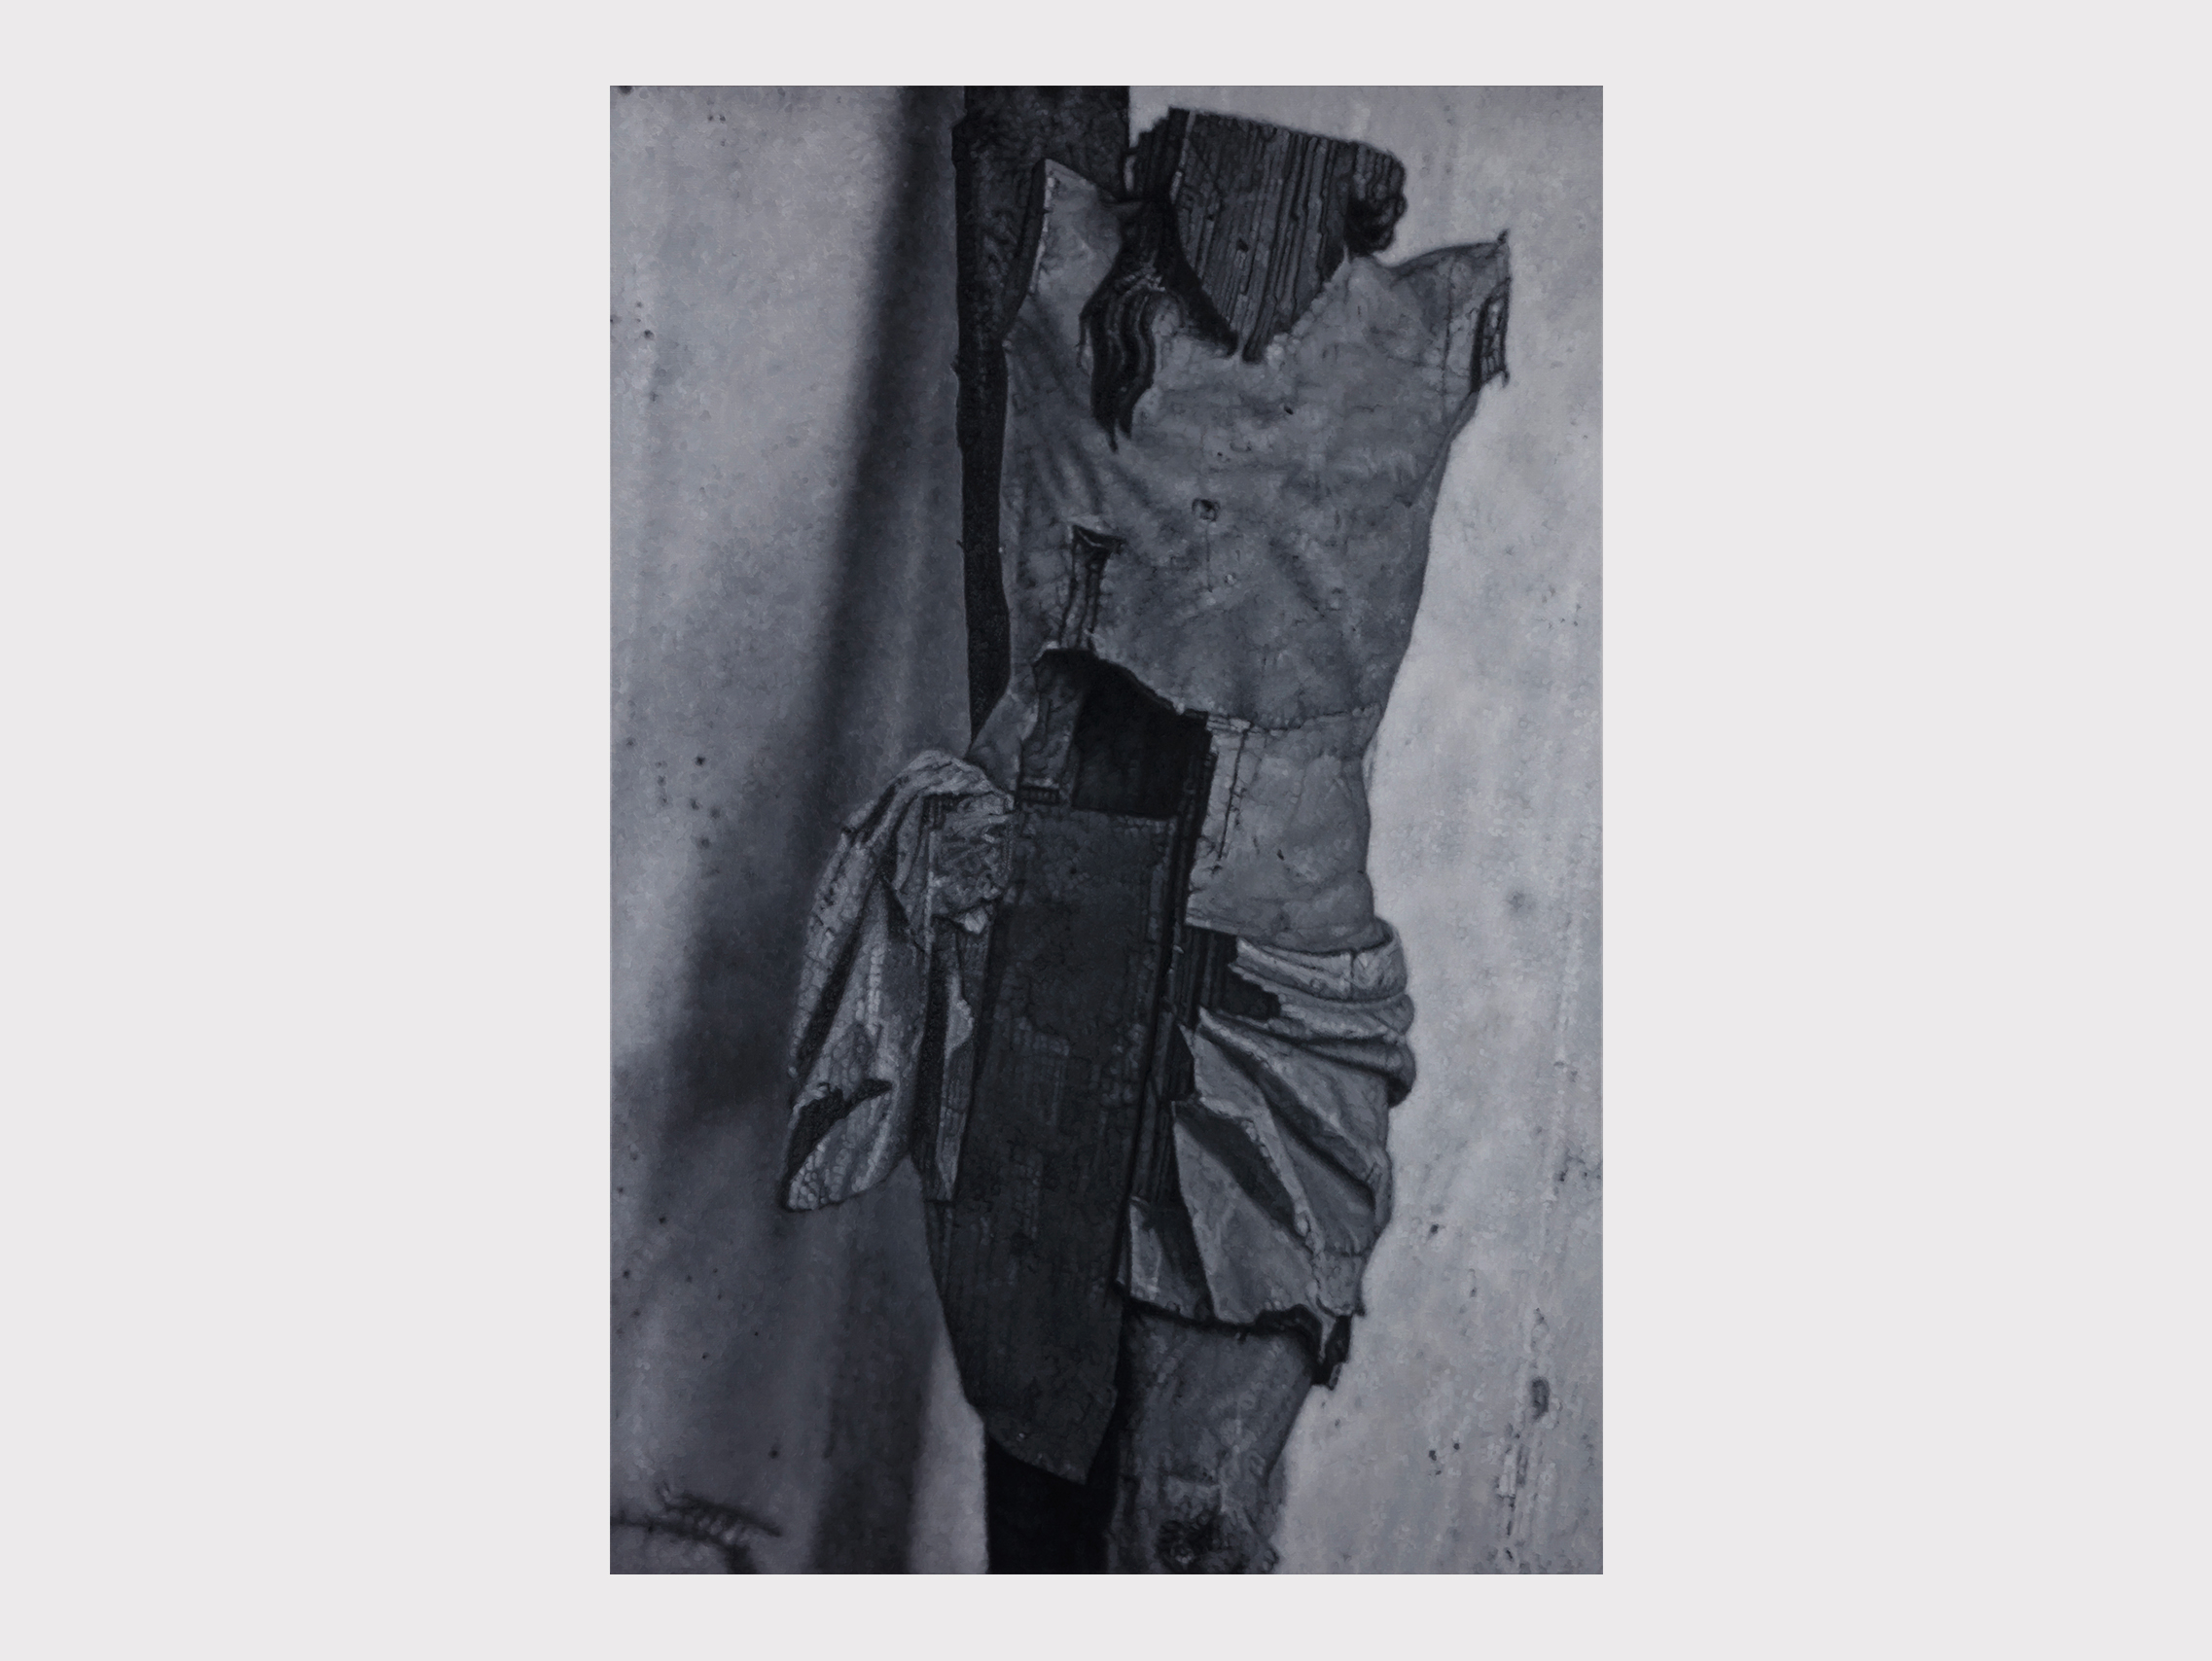 """Tomas Lundgren   Simulacra II , 2017–18 Oil on canvas 210 x 140 cm  """"The word 'simulacrum' (plur. 'simulacra') refers to something that represents or imitates something else. This is obviously a broken wooden crucifix, maybe from the Middle Ages. Jesus on the cross is a representation of the pain and evil that are inherent to the human condition. This representation of his battered body has endured a second round of abuse, this time by oblivion and decay. New injuries have been added to old."""""""